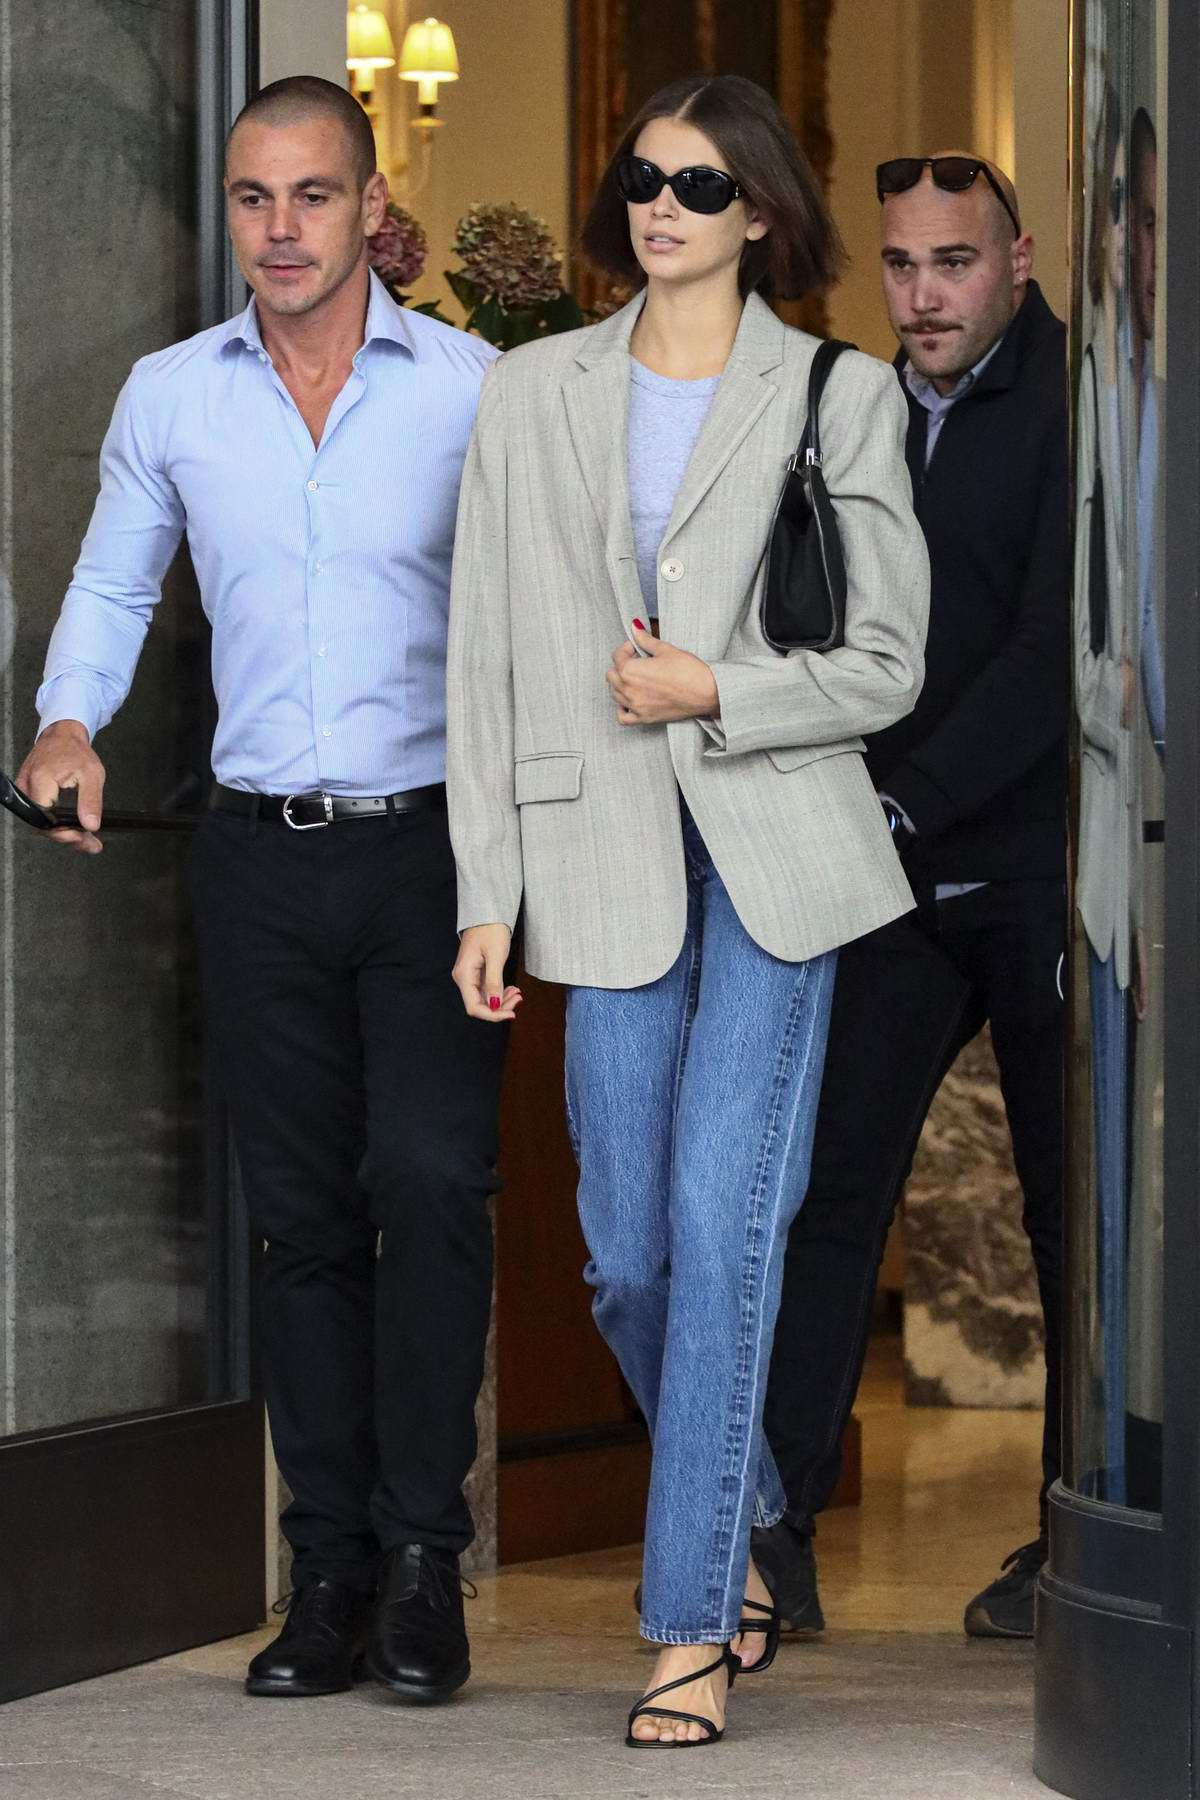 Kaia Gerber looks stylish in blazer and jeans as she leaves the hotel during Milan Fashion Week in Milan, Italy